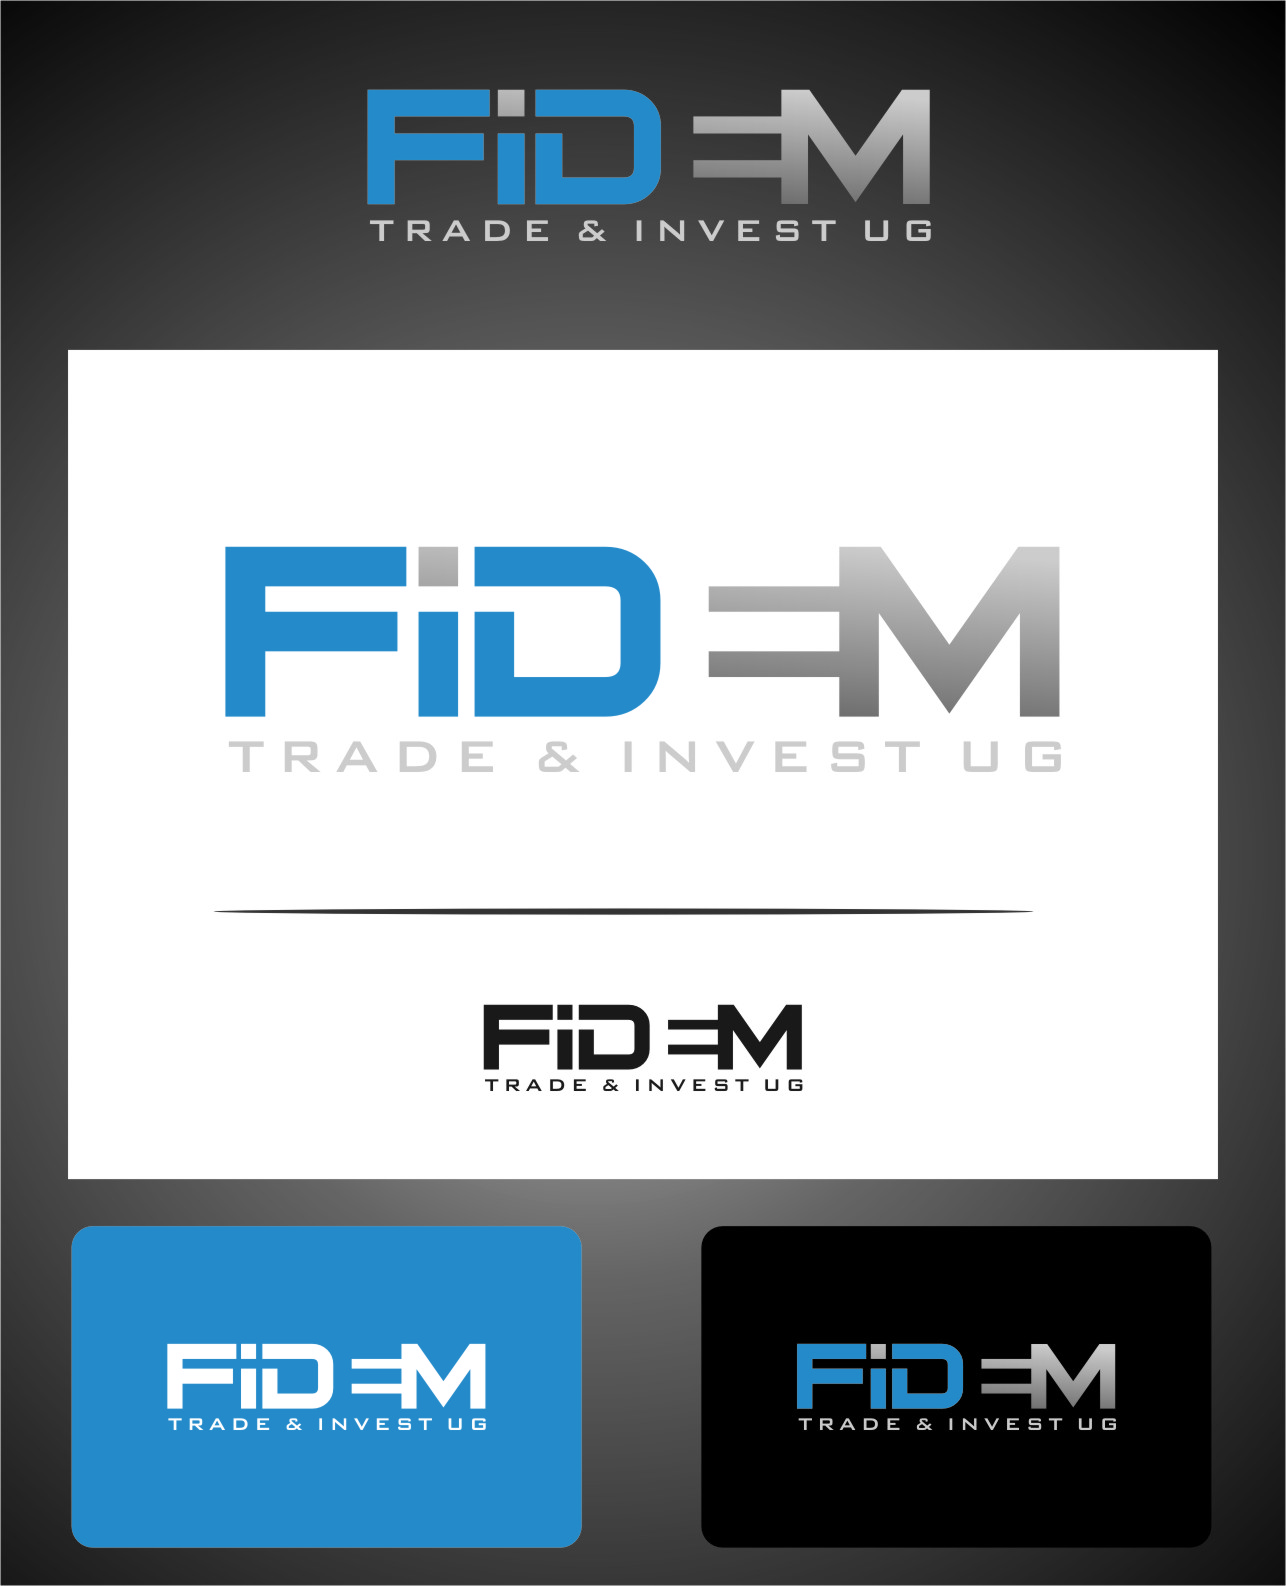 Logo Design by RasYa Muhammad Athaya - Entry No. 581 in the Logo Design Contest Professional Logo Design for FIDEM Trade & Invest UG.